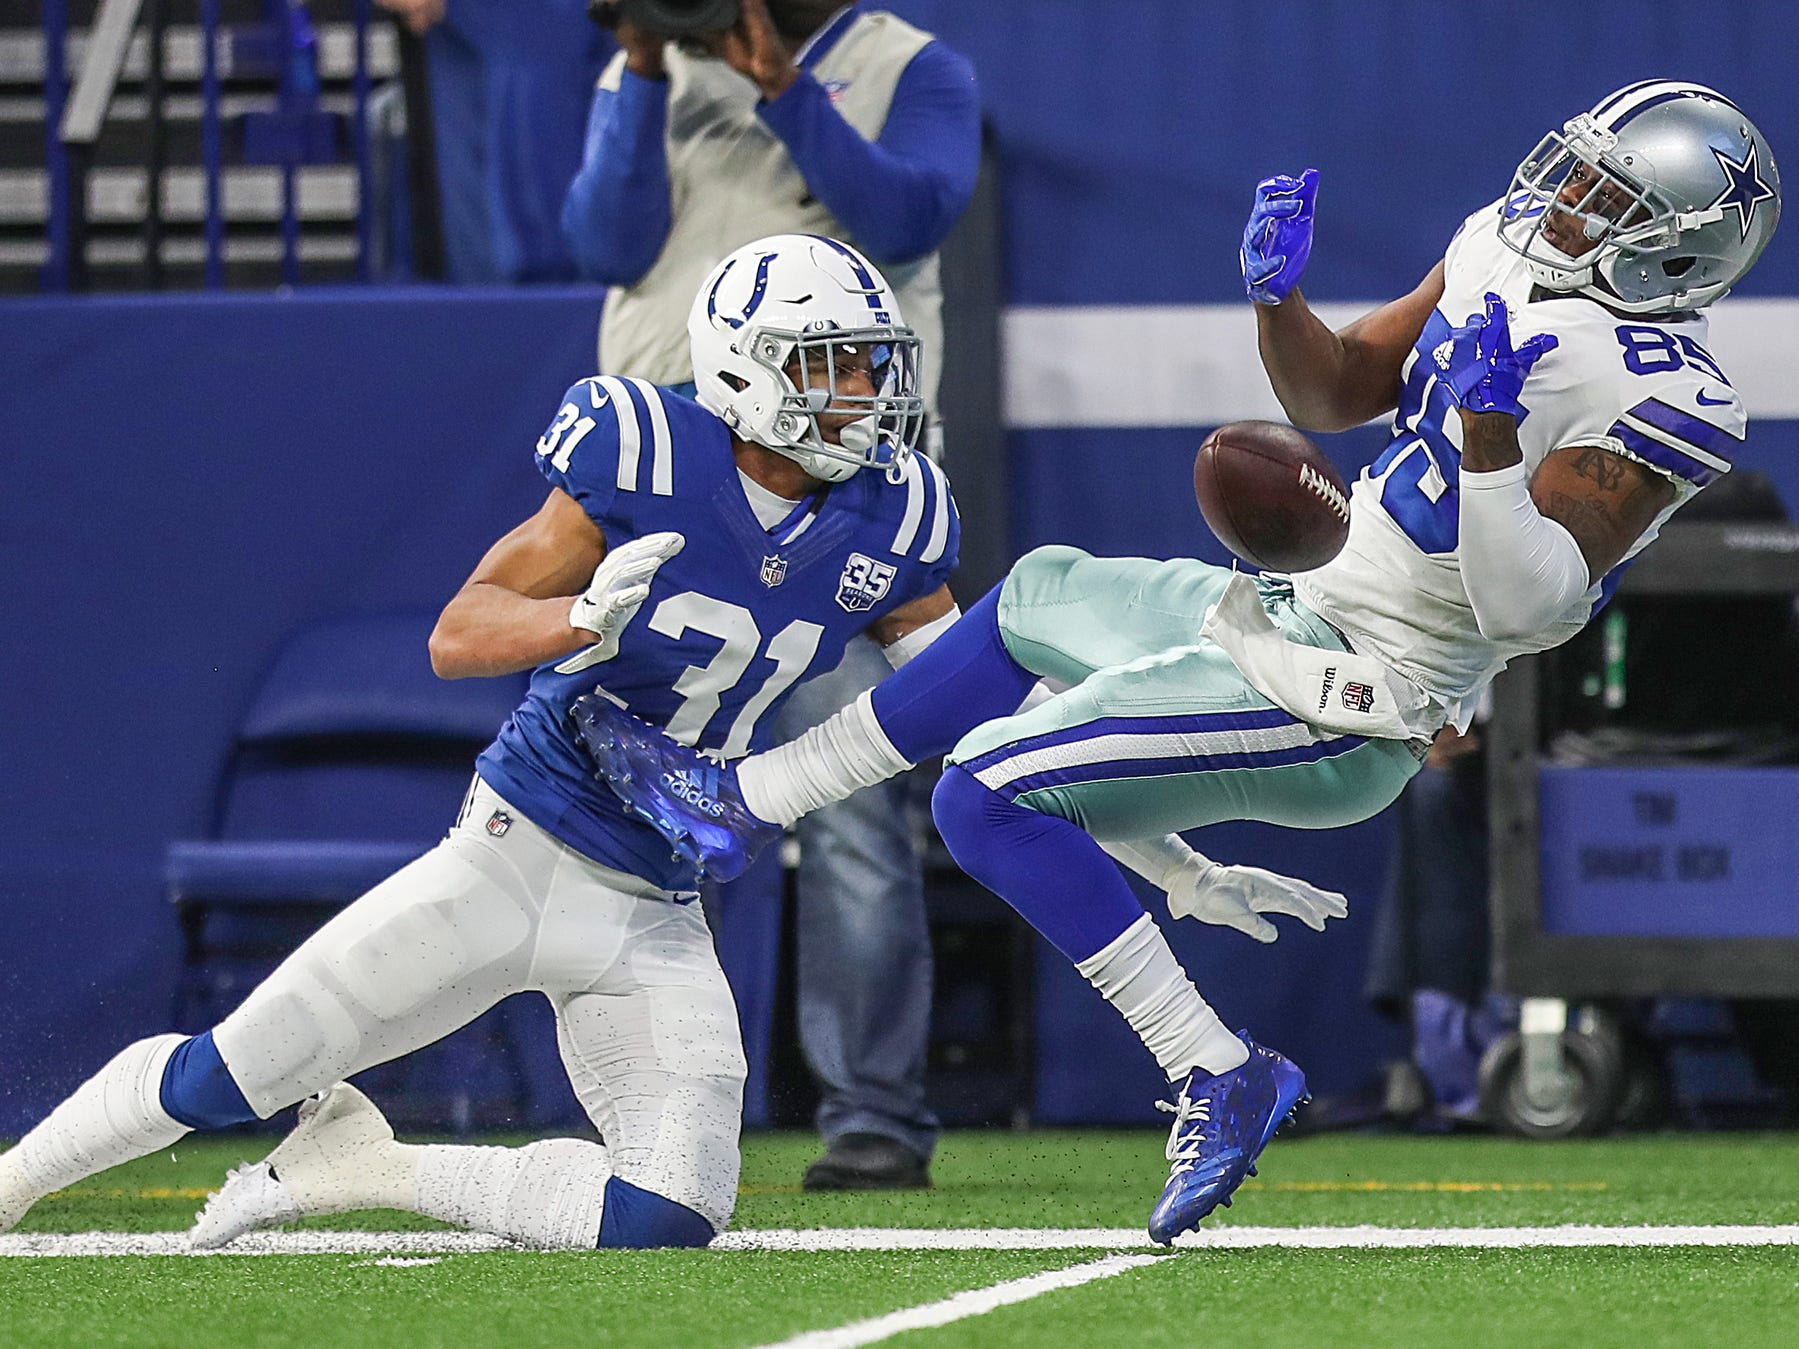 Indianapolis Colts cornerback Quincy Wilson (31) keeps Dallas Cowboys wide receiver Noah Brown (85) from receiving a long pass in the first half of the game at Lucas Oil Stadium in Indianapolis, Sunday, Dec. 16, 2018.